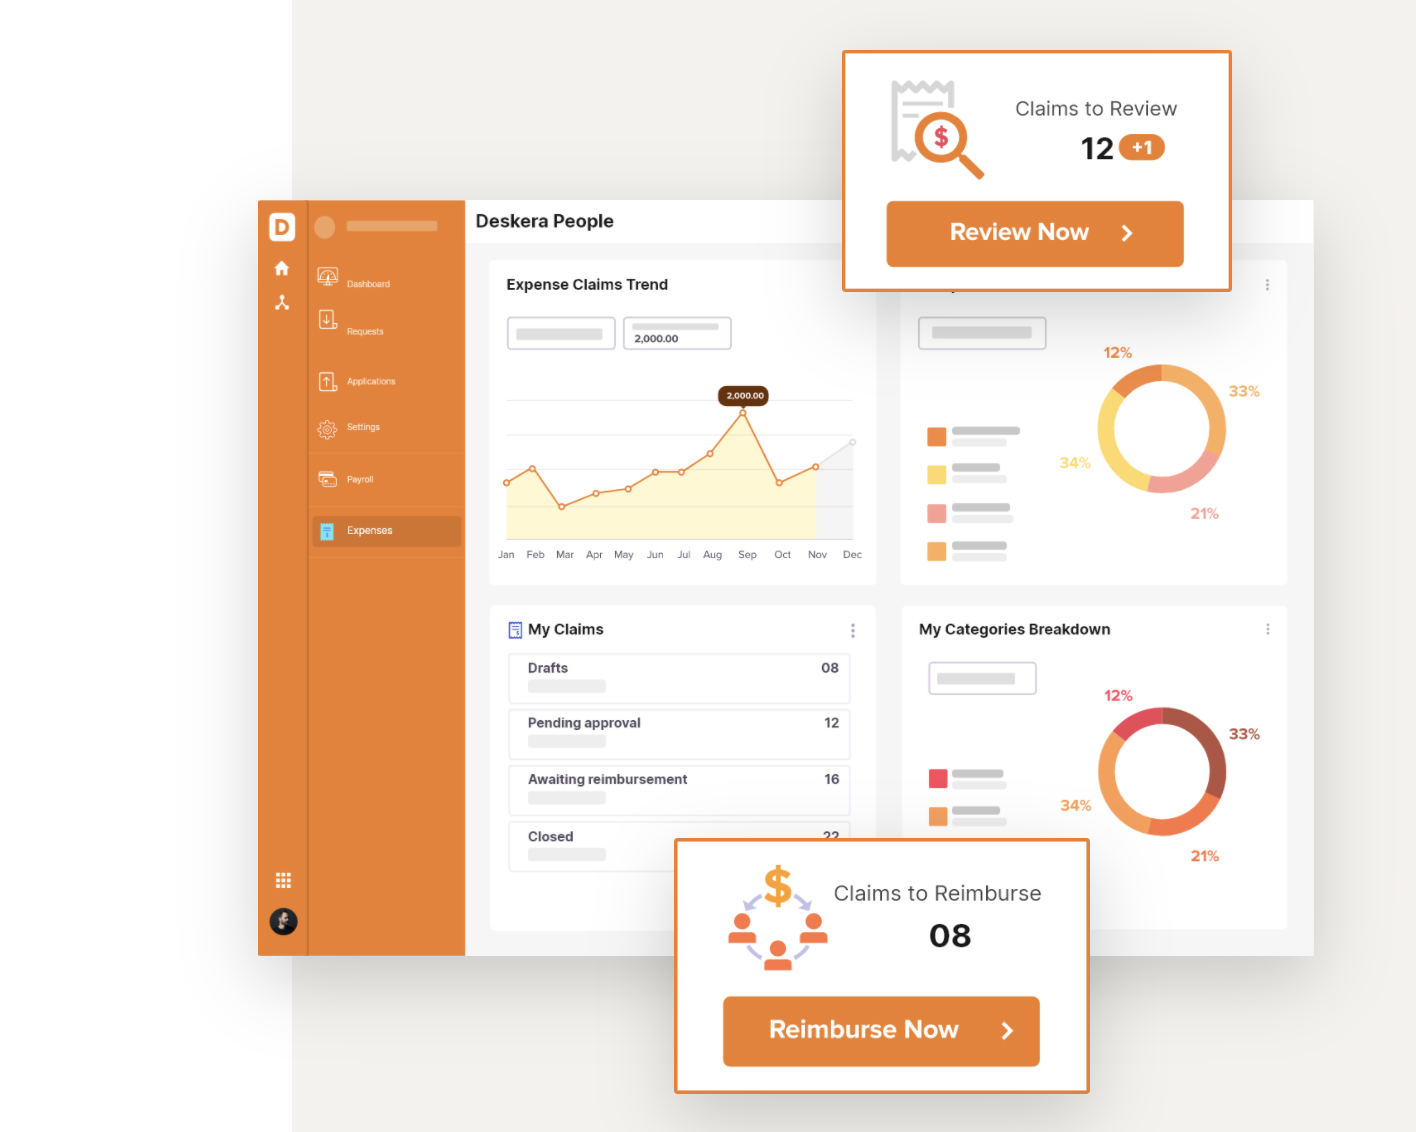 Deskera People Dashboard